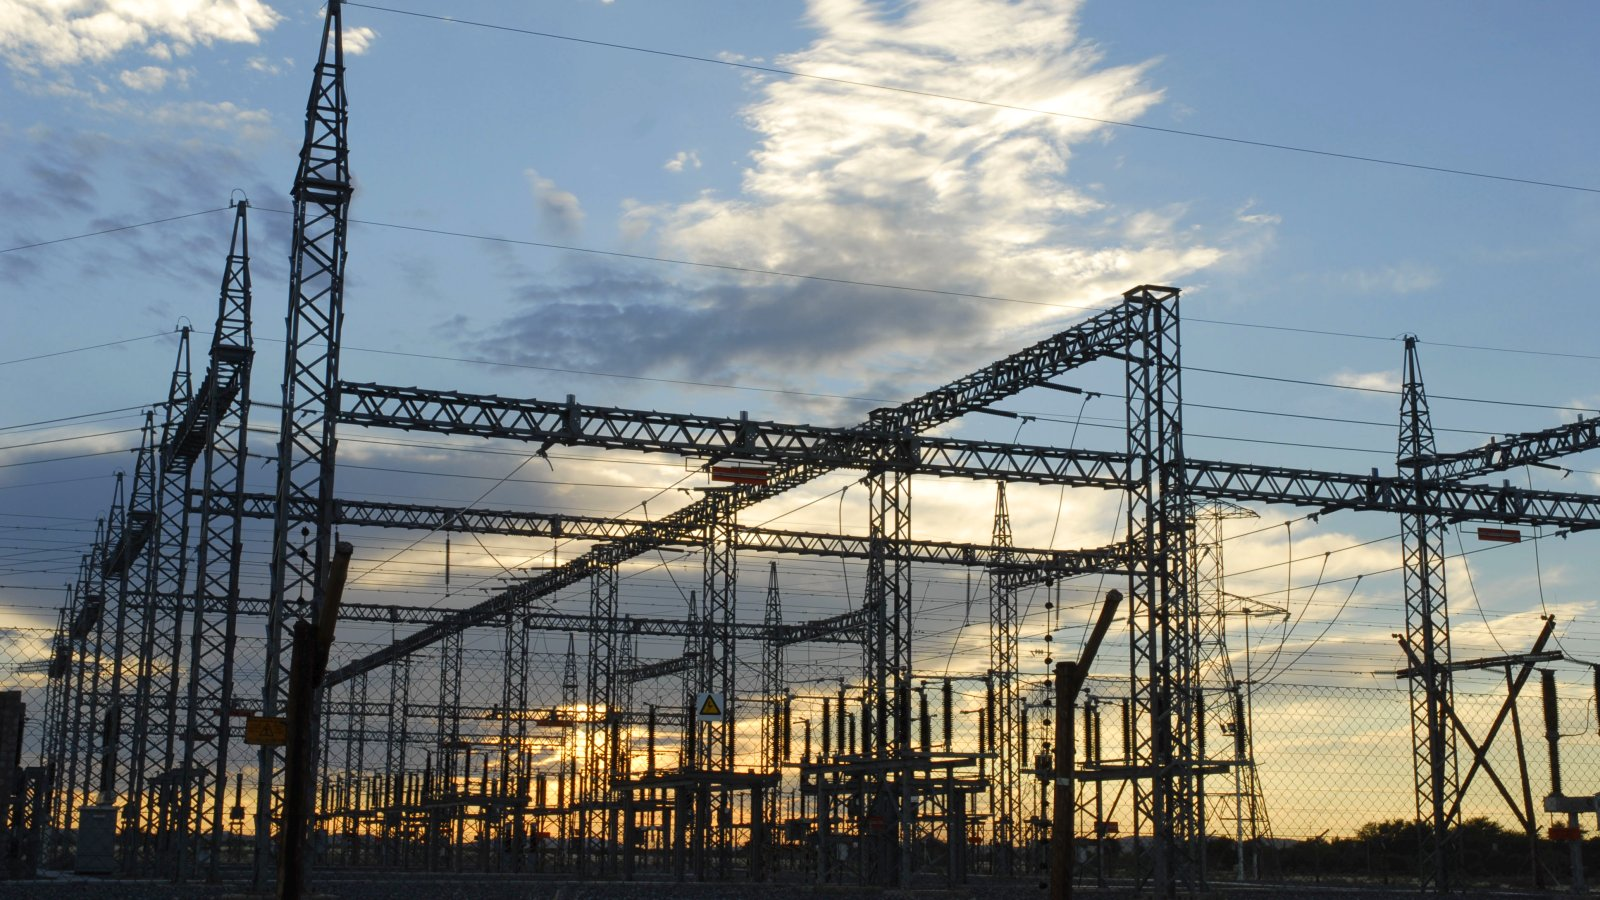 Load Shedding Johannesburg Image: The Chilling Facts And Numbers Behind Eskom's Deepening